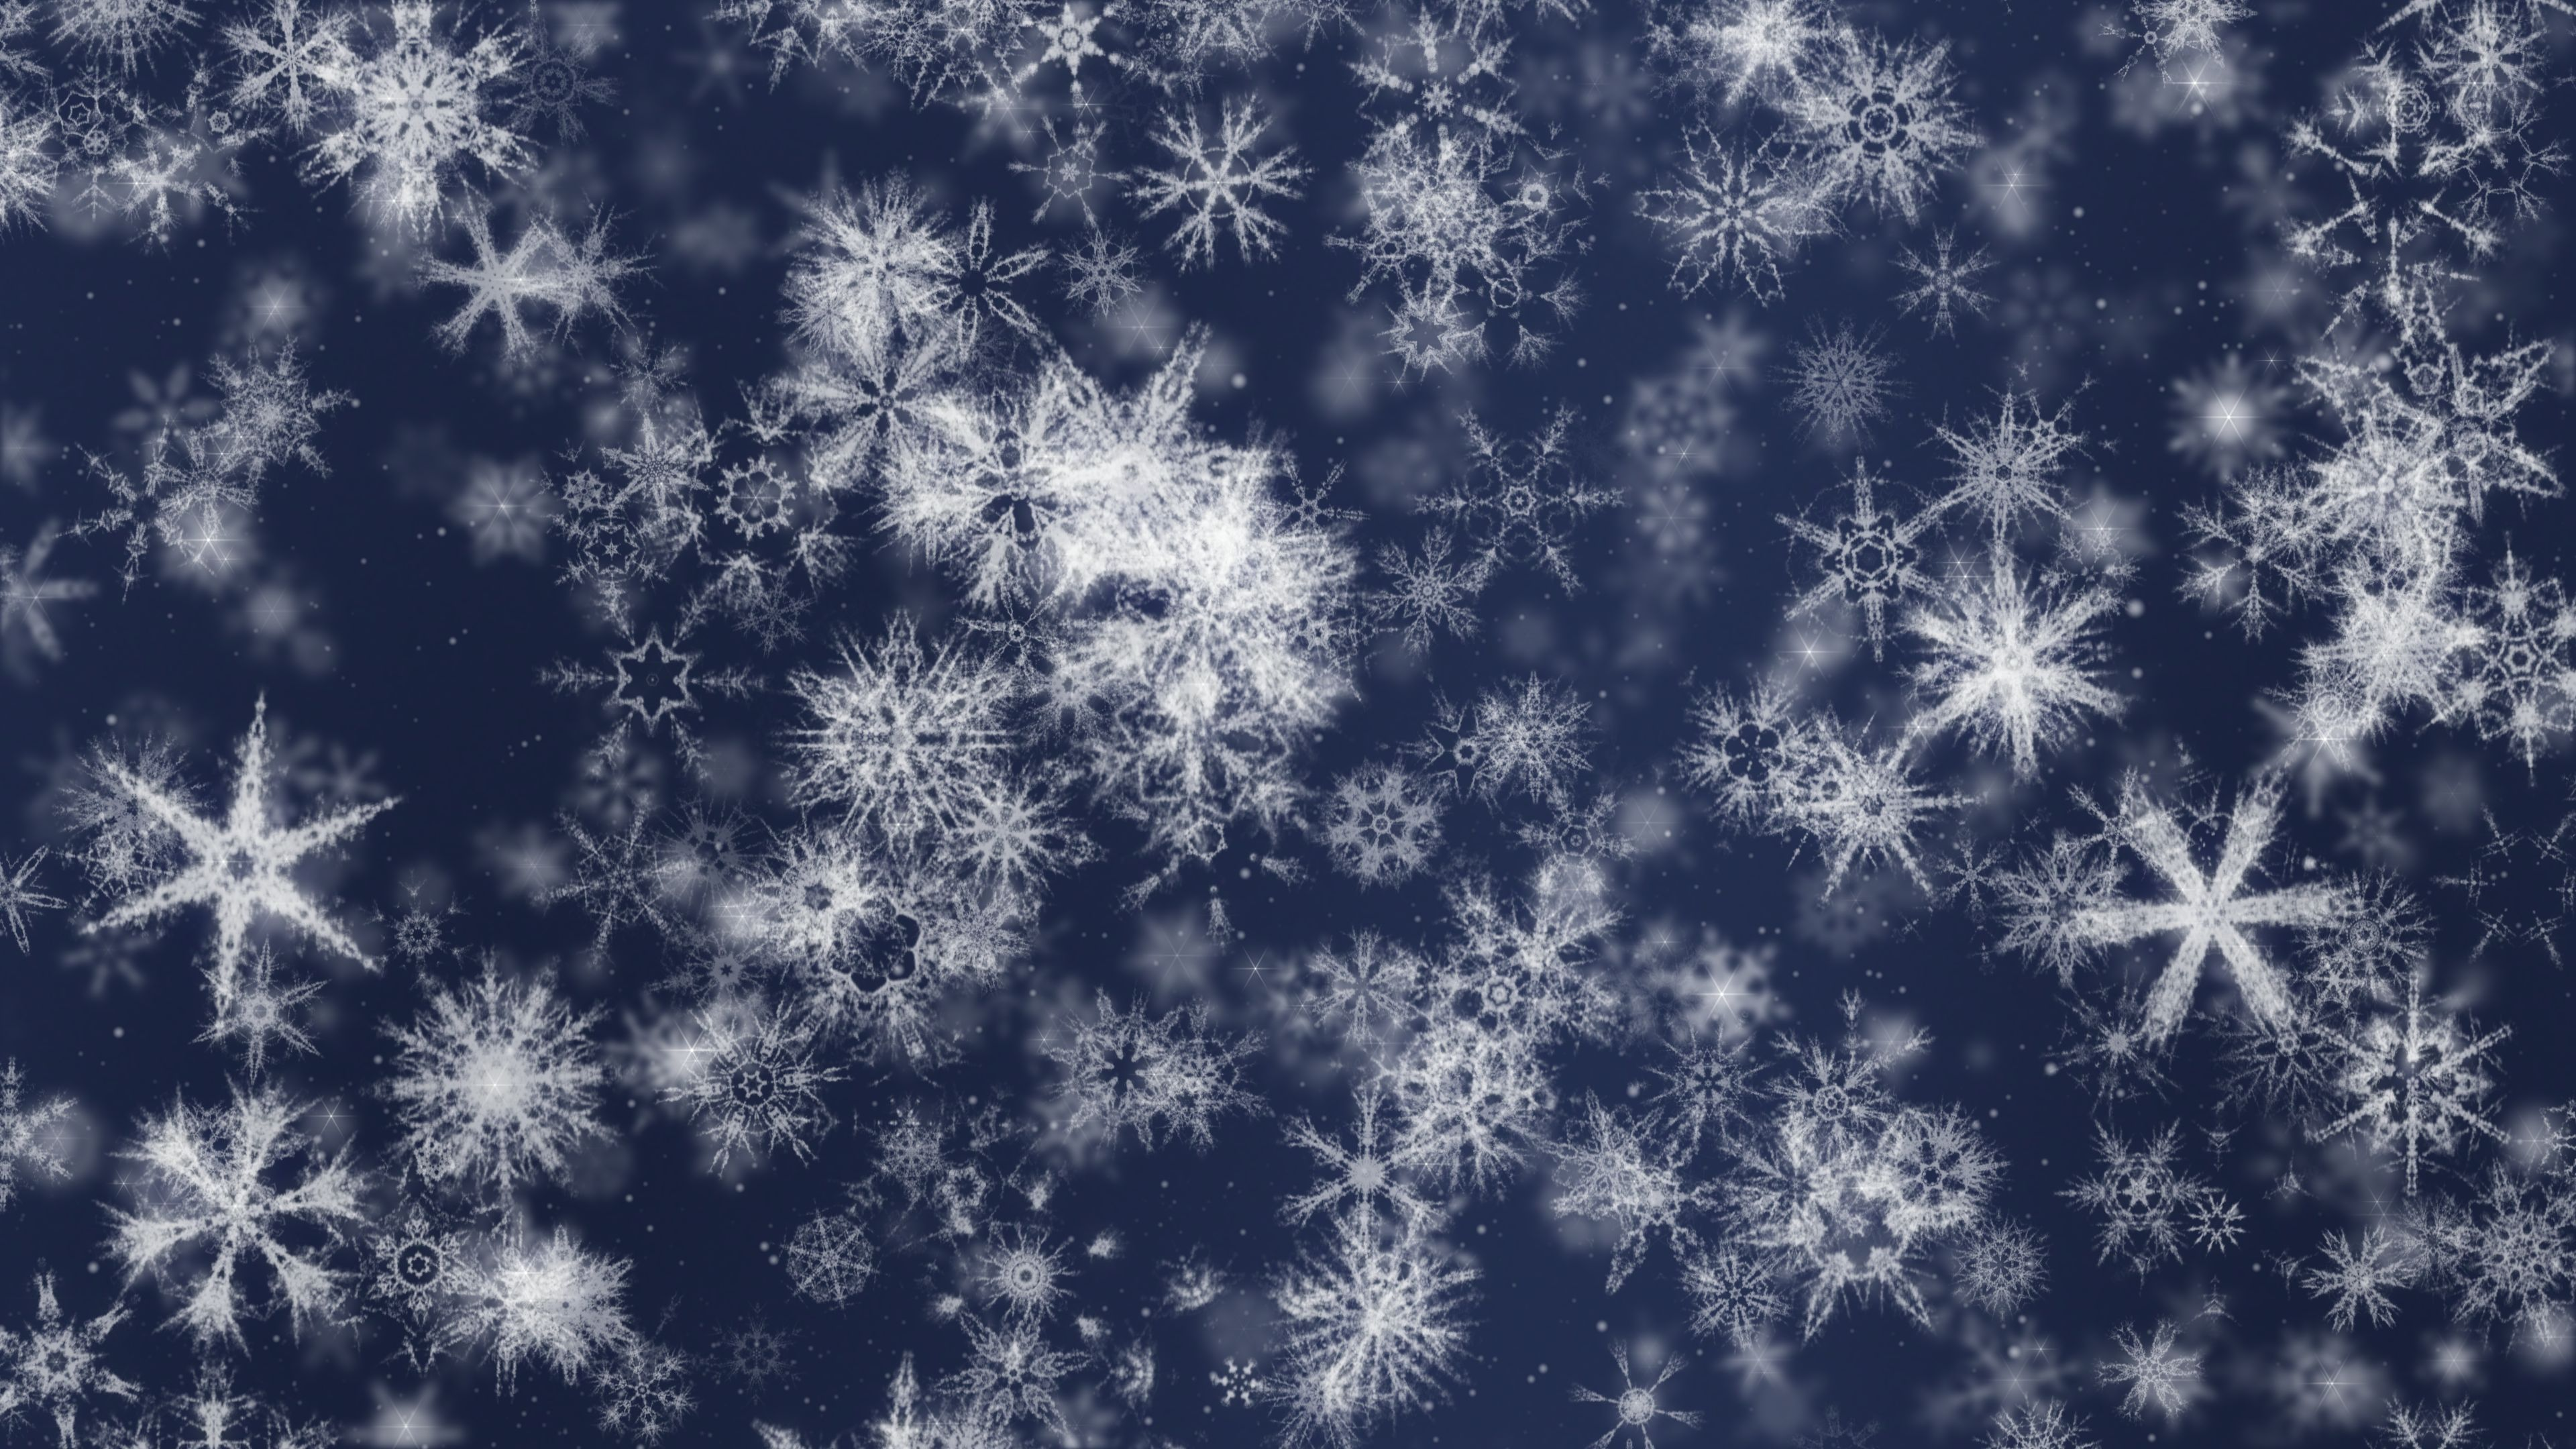 Christmas, Winter And Snow Motion Backgrounds | downloops